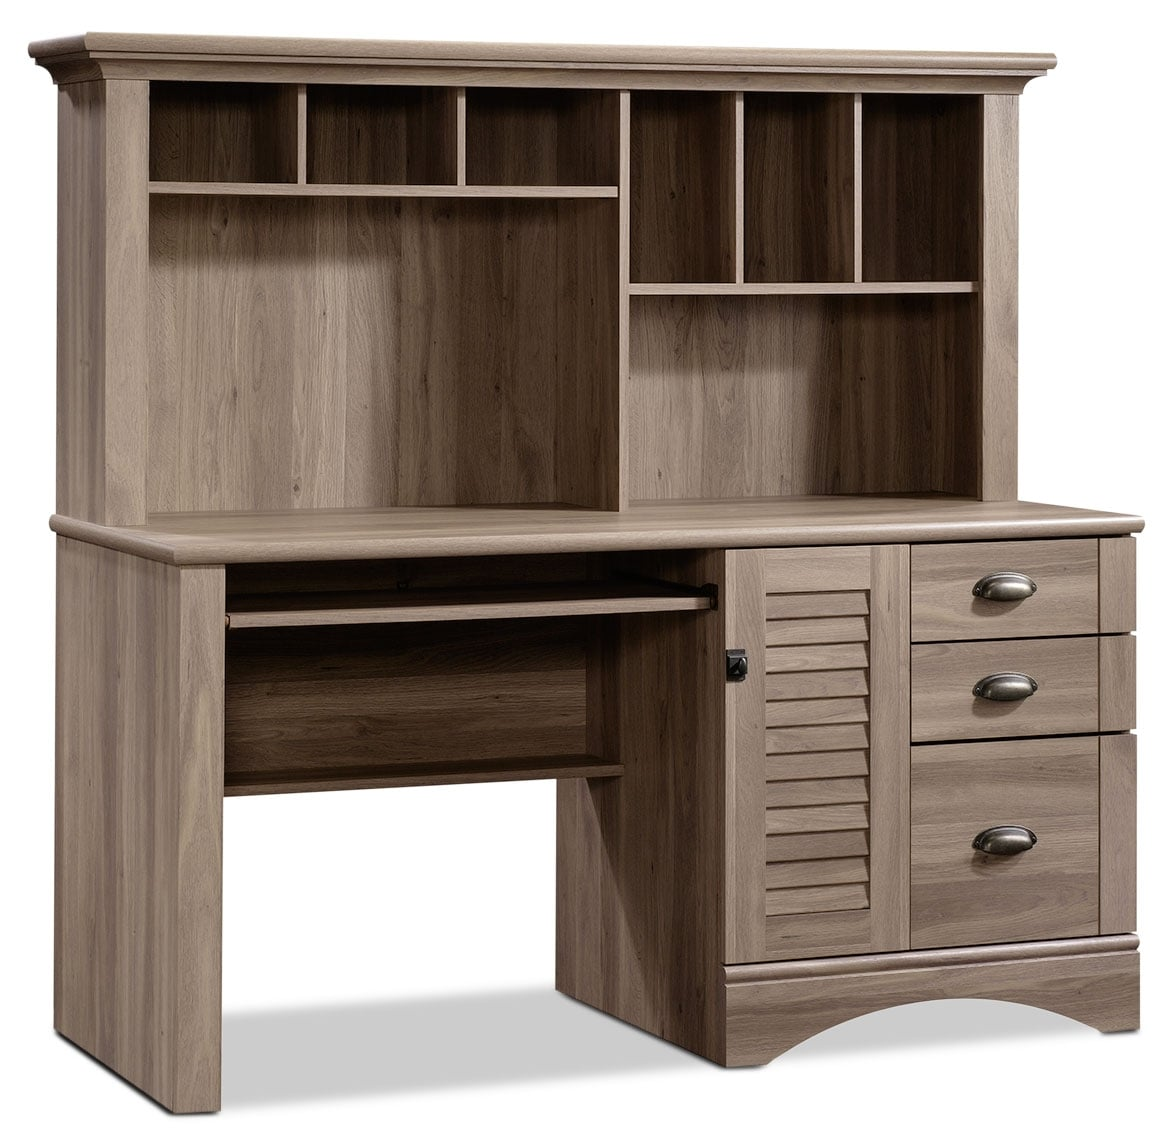 Harbor view desk with hutch salt oak the brick for Oak harbor furniture